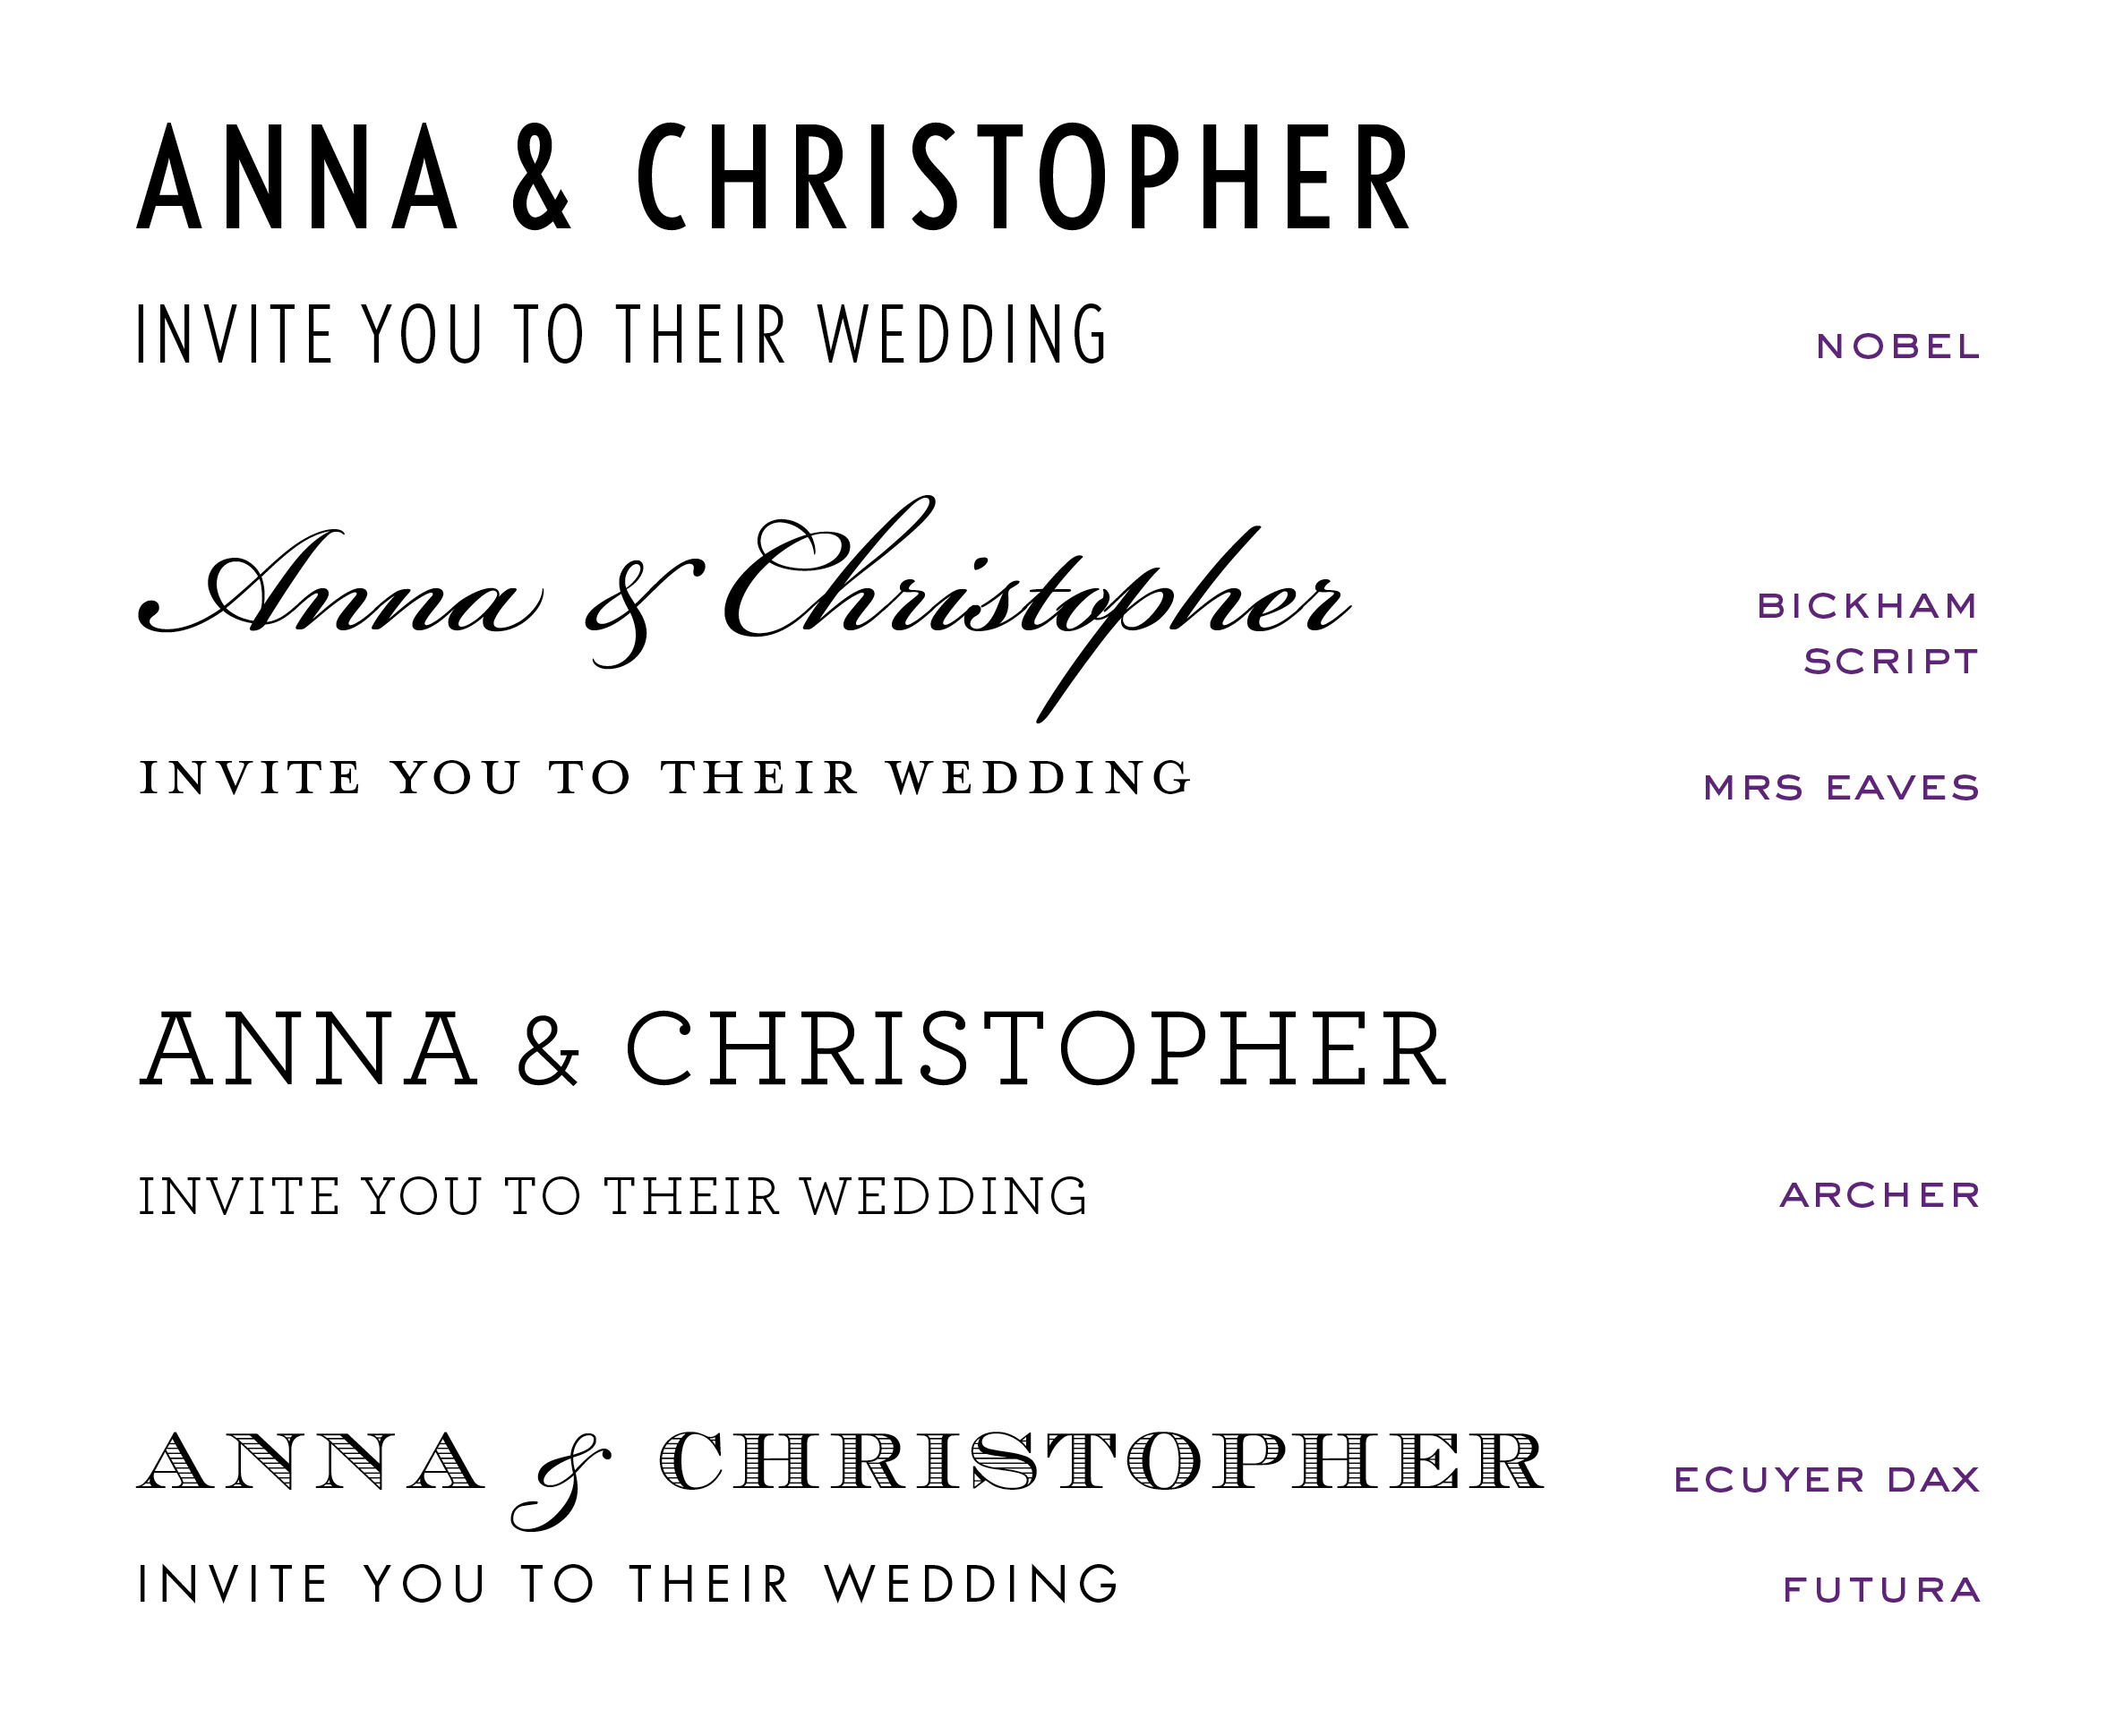 wedding invites nobel font - Wedding Invitation Fonts